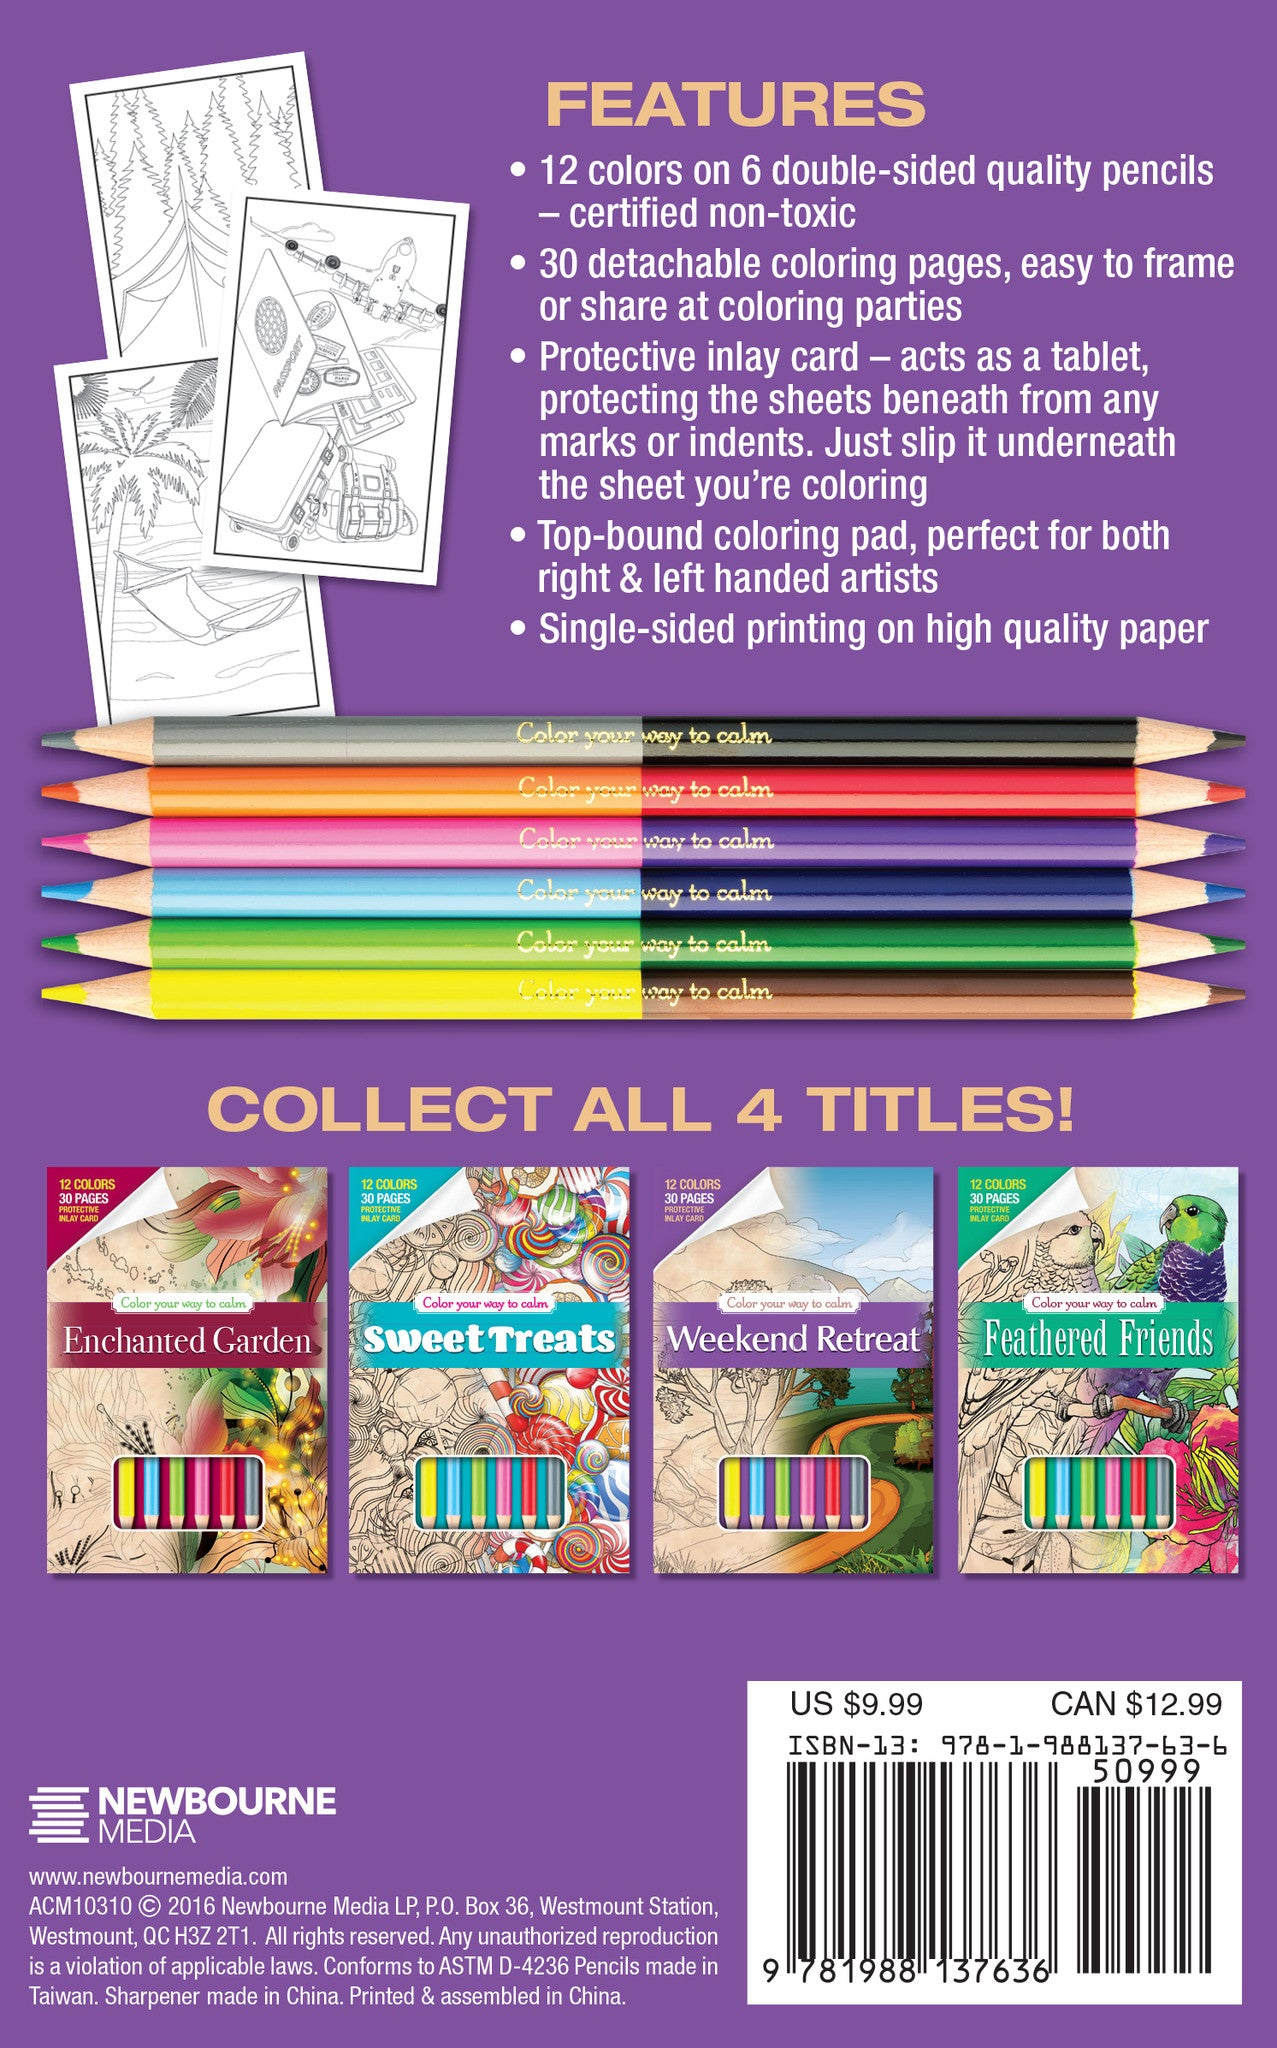 WEEKEND RETREAT Adult Coloring Book Includes 12 Colored Pencils Travel Size